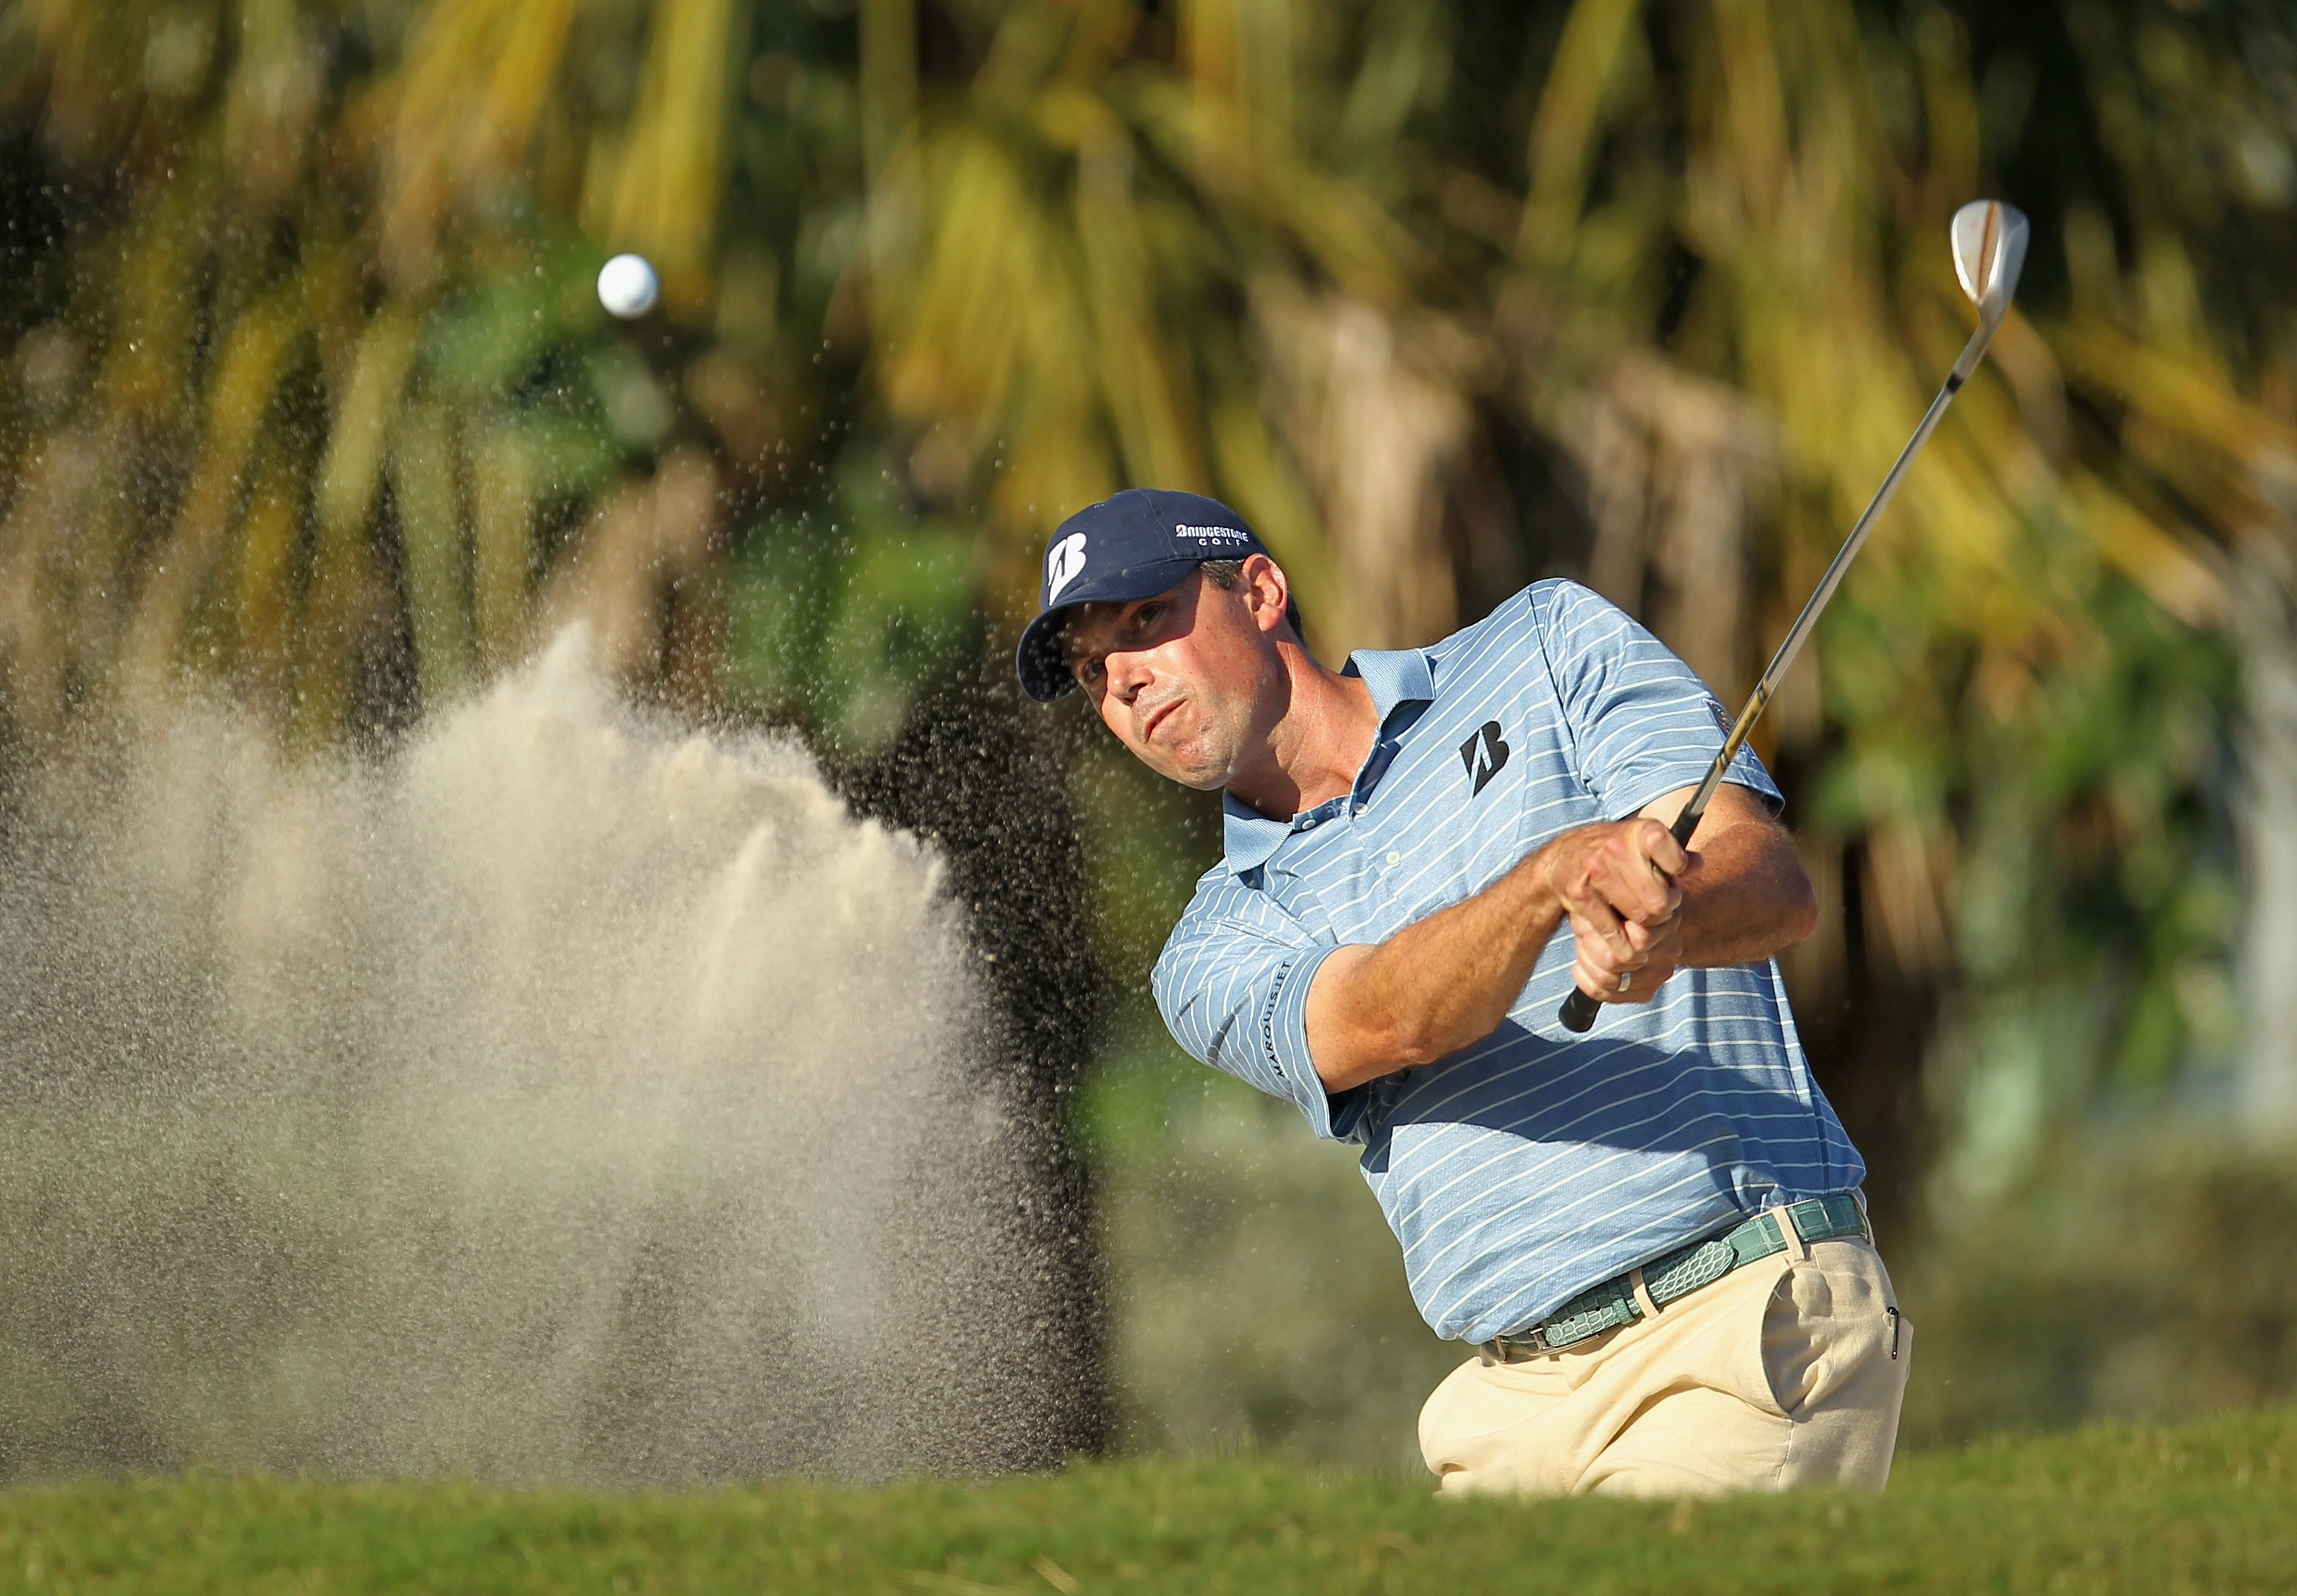 DORAL, FL - MARCH 13:  Matt Kuchar hits a bunker shot on the 13th hole during the final round of the 2011 WGC- Cadillac Championship at the TPC Blue Monster at the Doral Golf Resort and Spa on March 13, 2011 in Doral, Florida.  (Photo by Mike Ehrmann/Gett